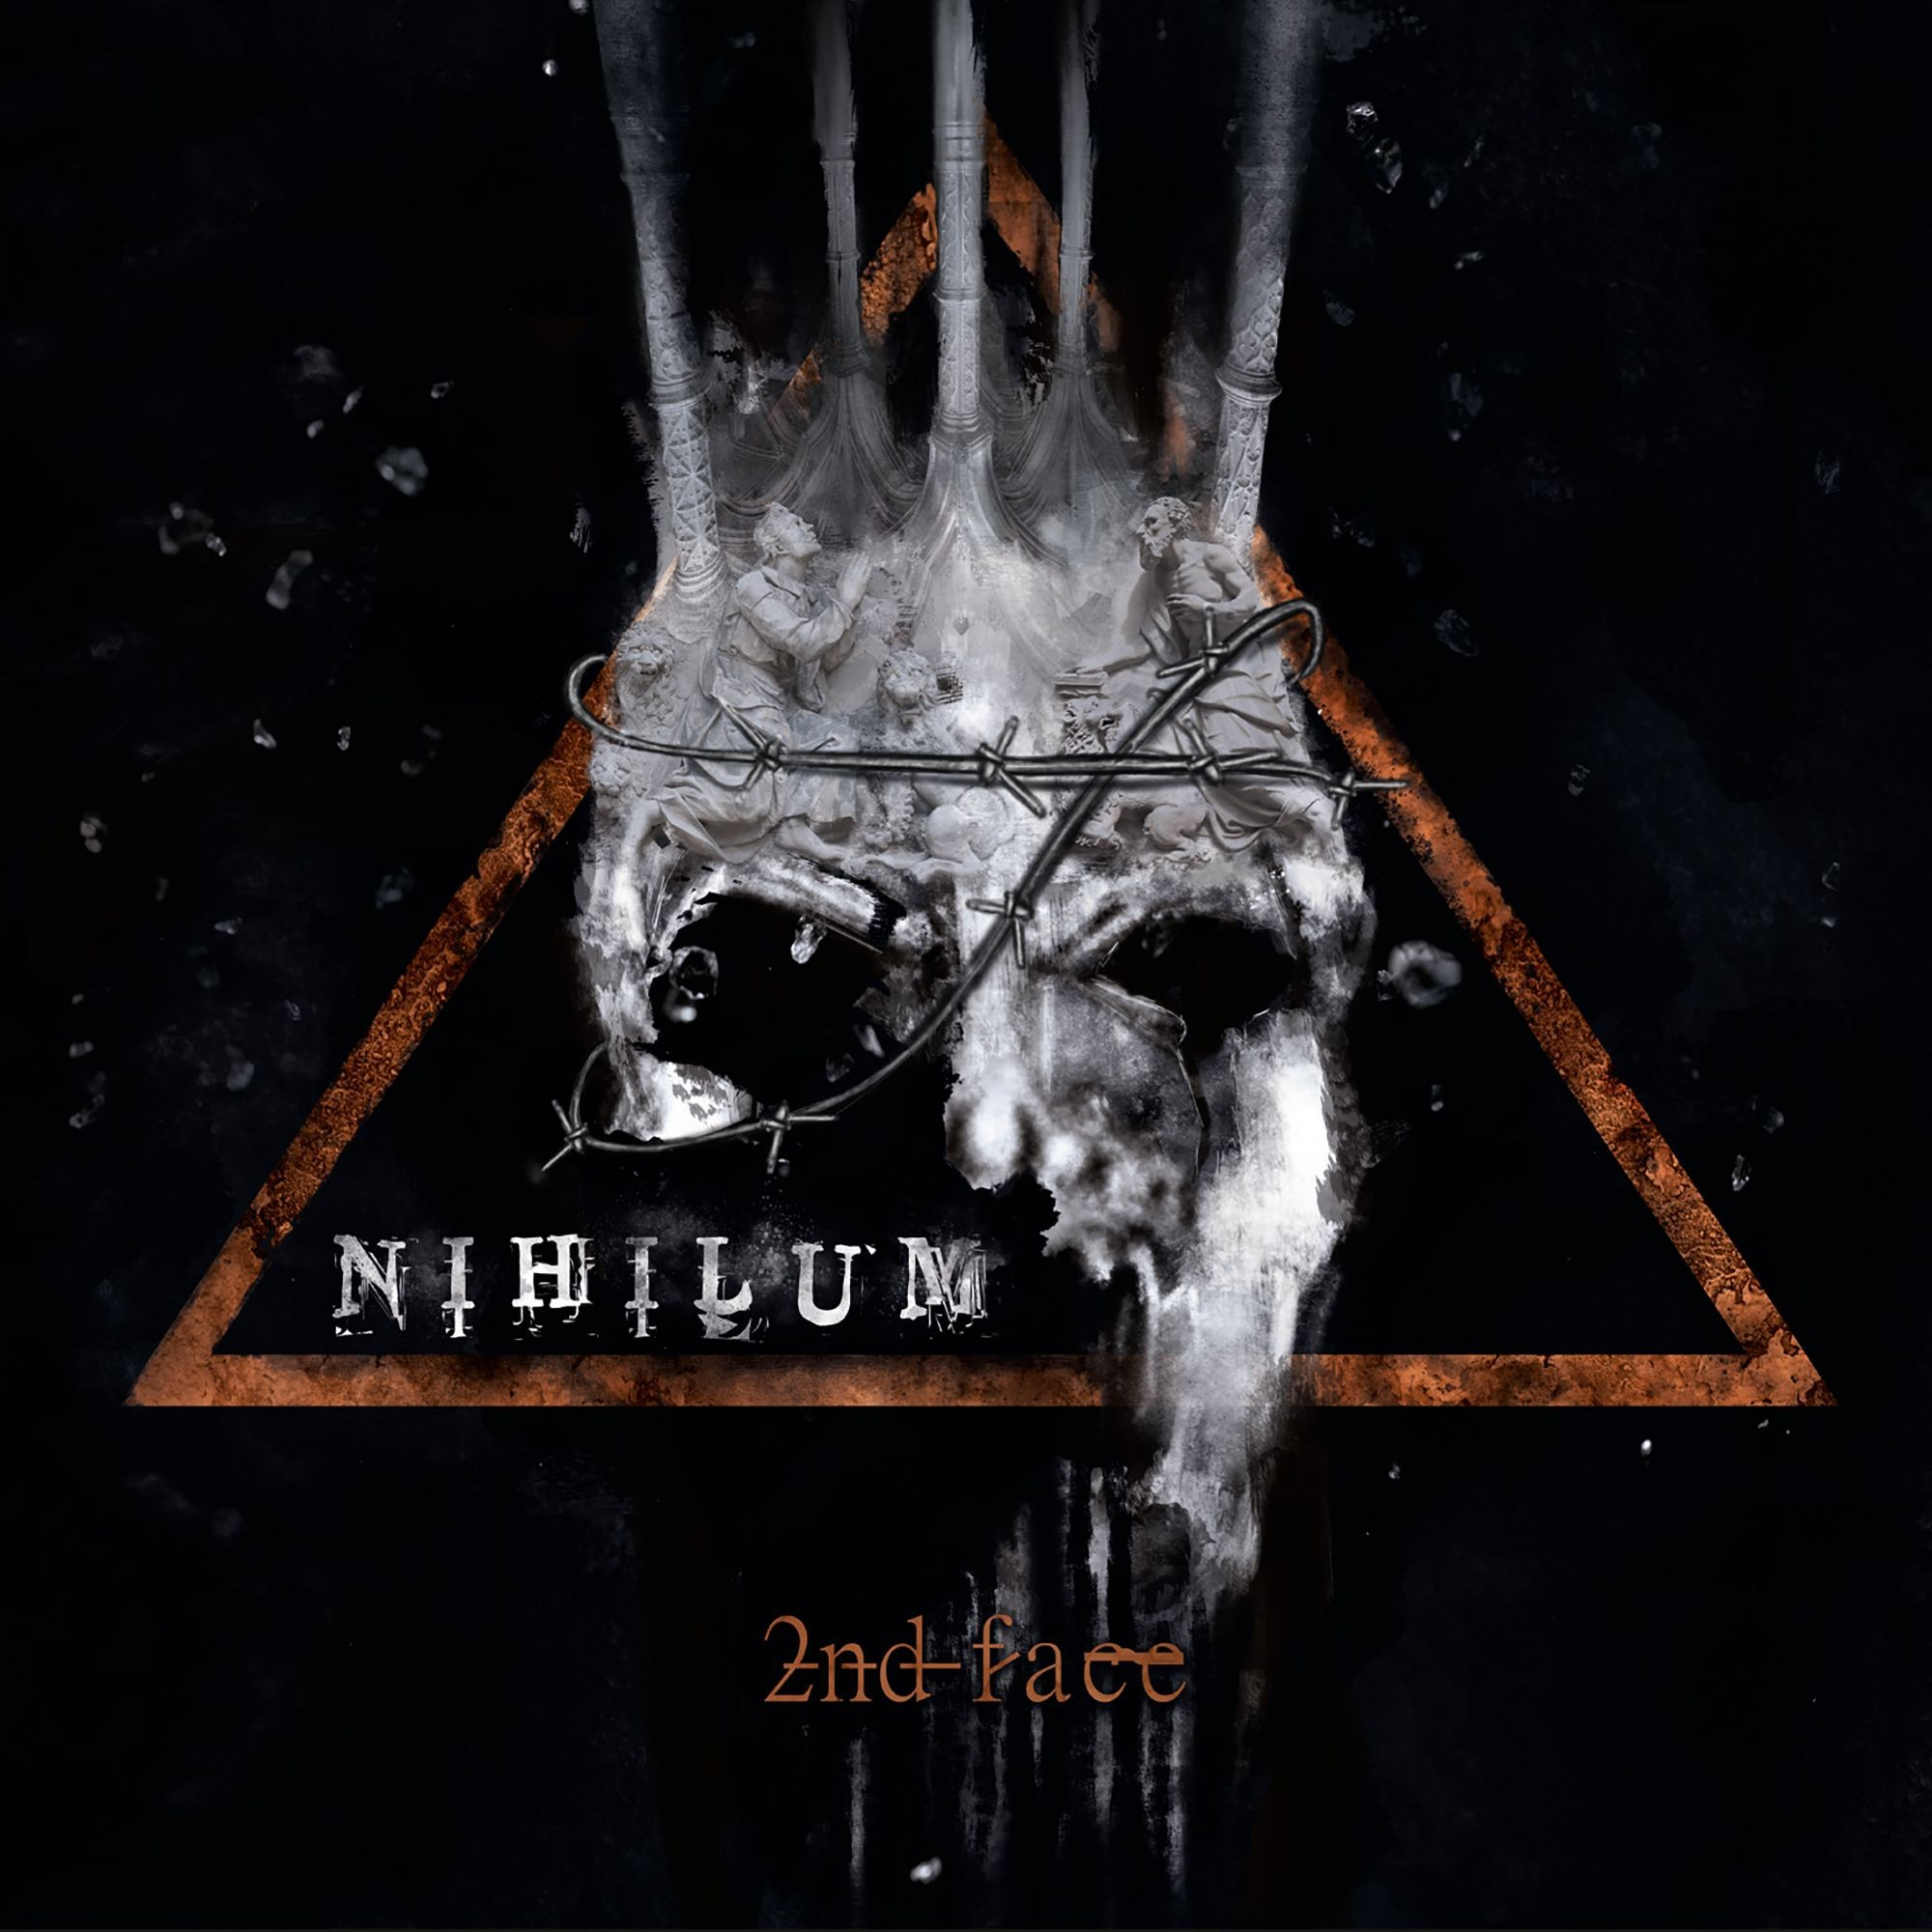 2nd Face - Nihilum - CD - ep